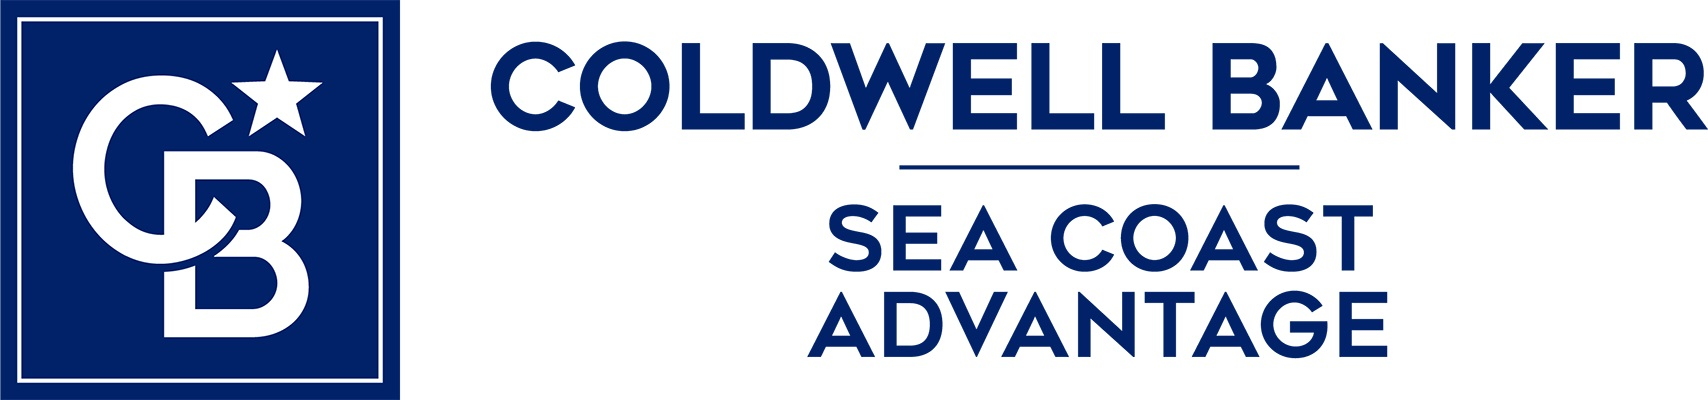 Nell Bott - Coldwell Banker Sea Coast Advantage Realty